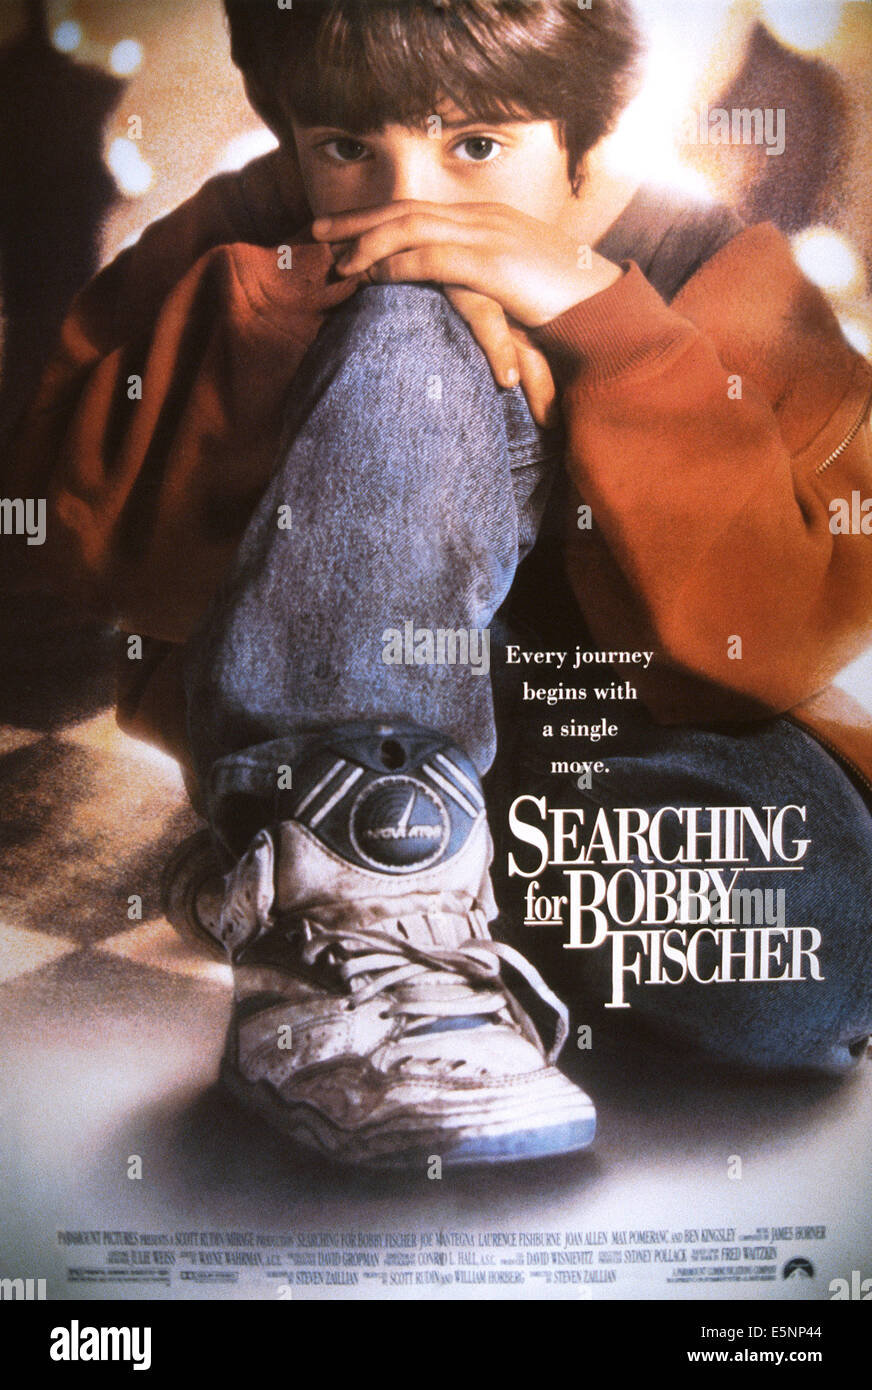 SEARCHING FOR BOBBY FISCHER, US poster, Max Pomeranc, 1993, © Paramount/courtesy Everett Collection - Stock Image